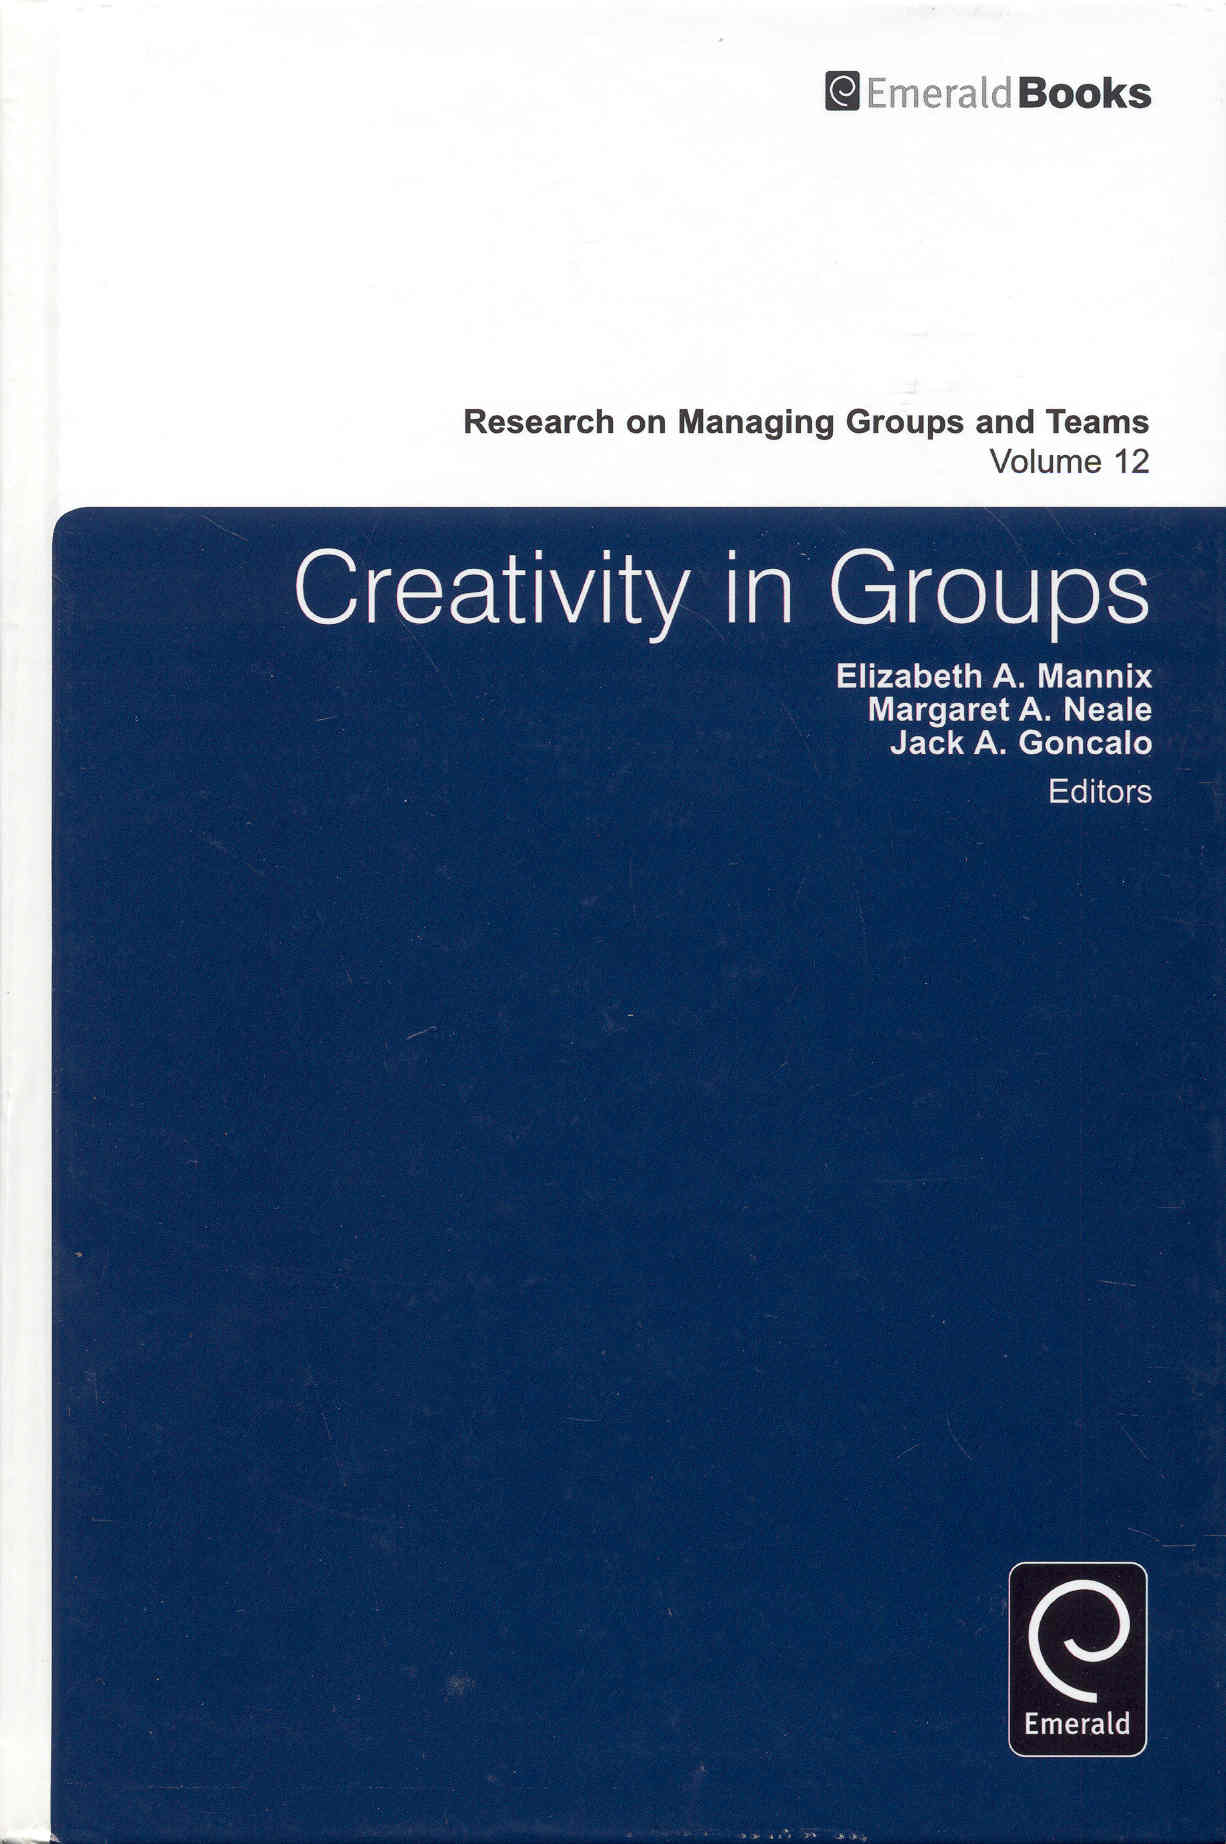 Image for Creativity in Groups